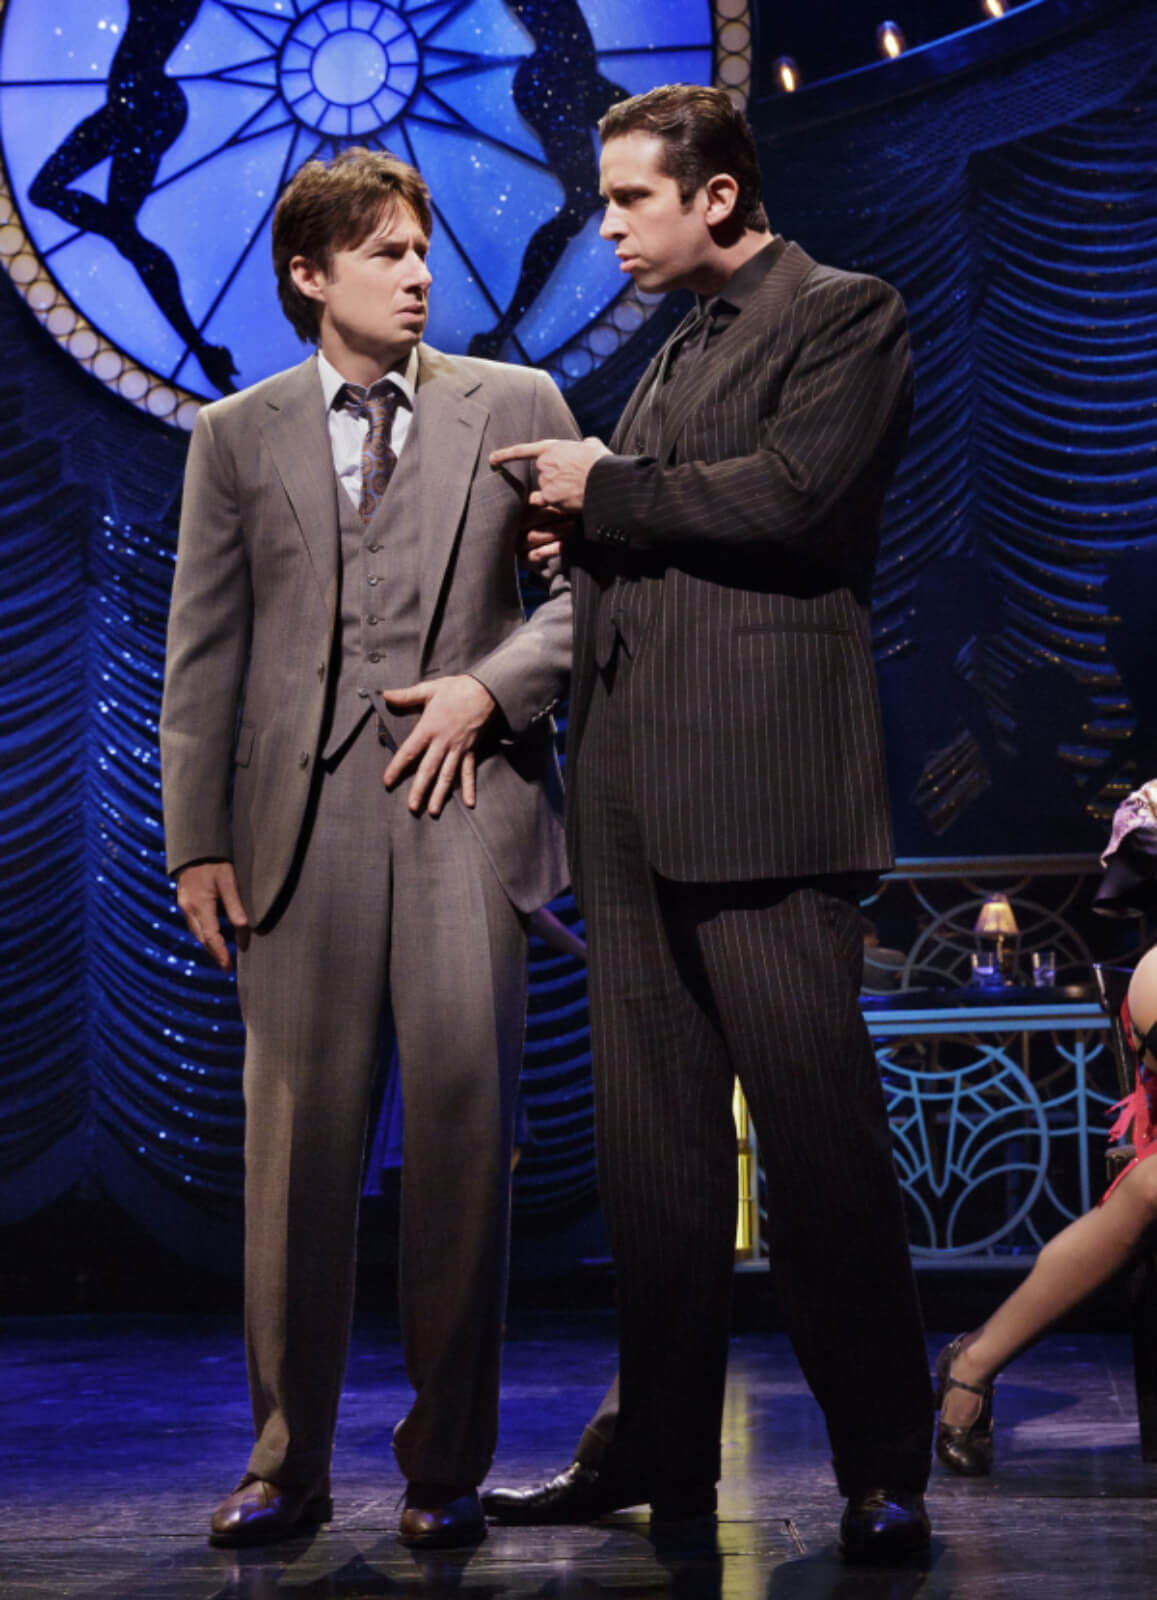 Cheech (the tall Nick Cordero in a black pin stripe suit) warns David (the scared Zach Braff in a grey suit) how to write the next scene.